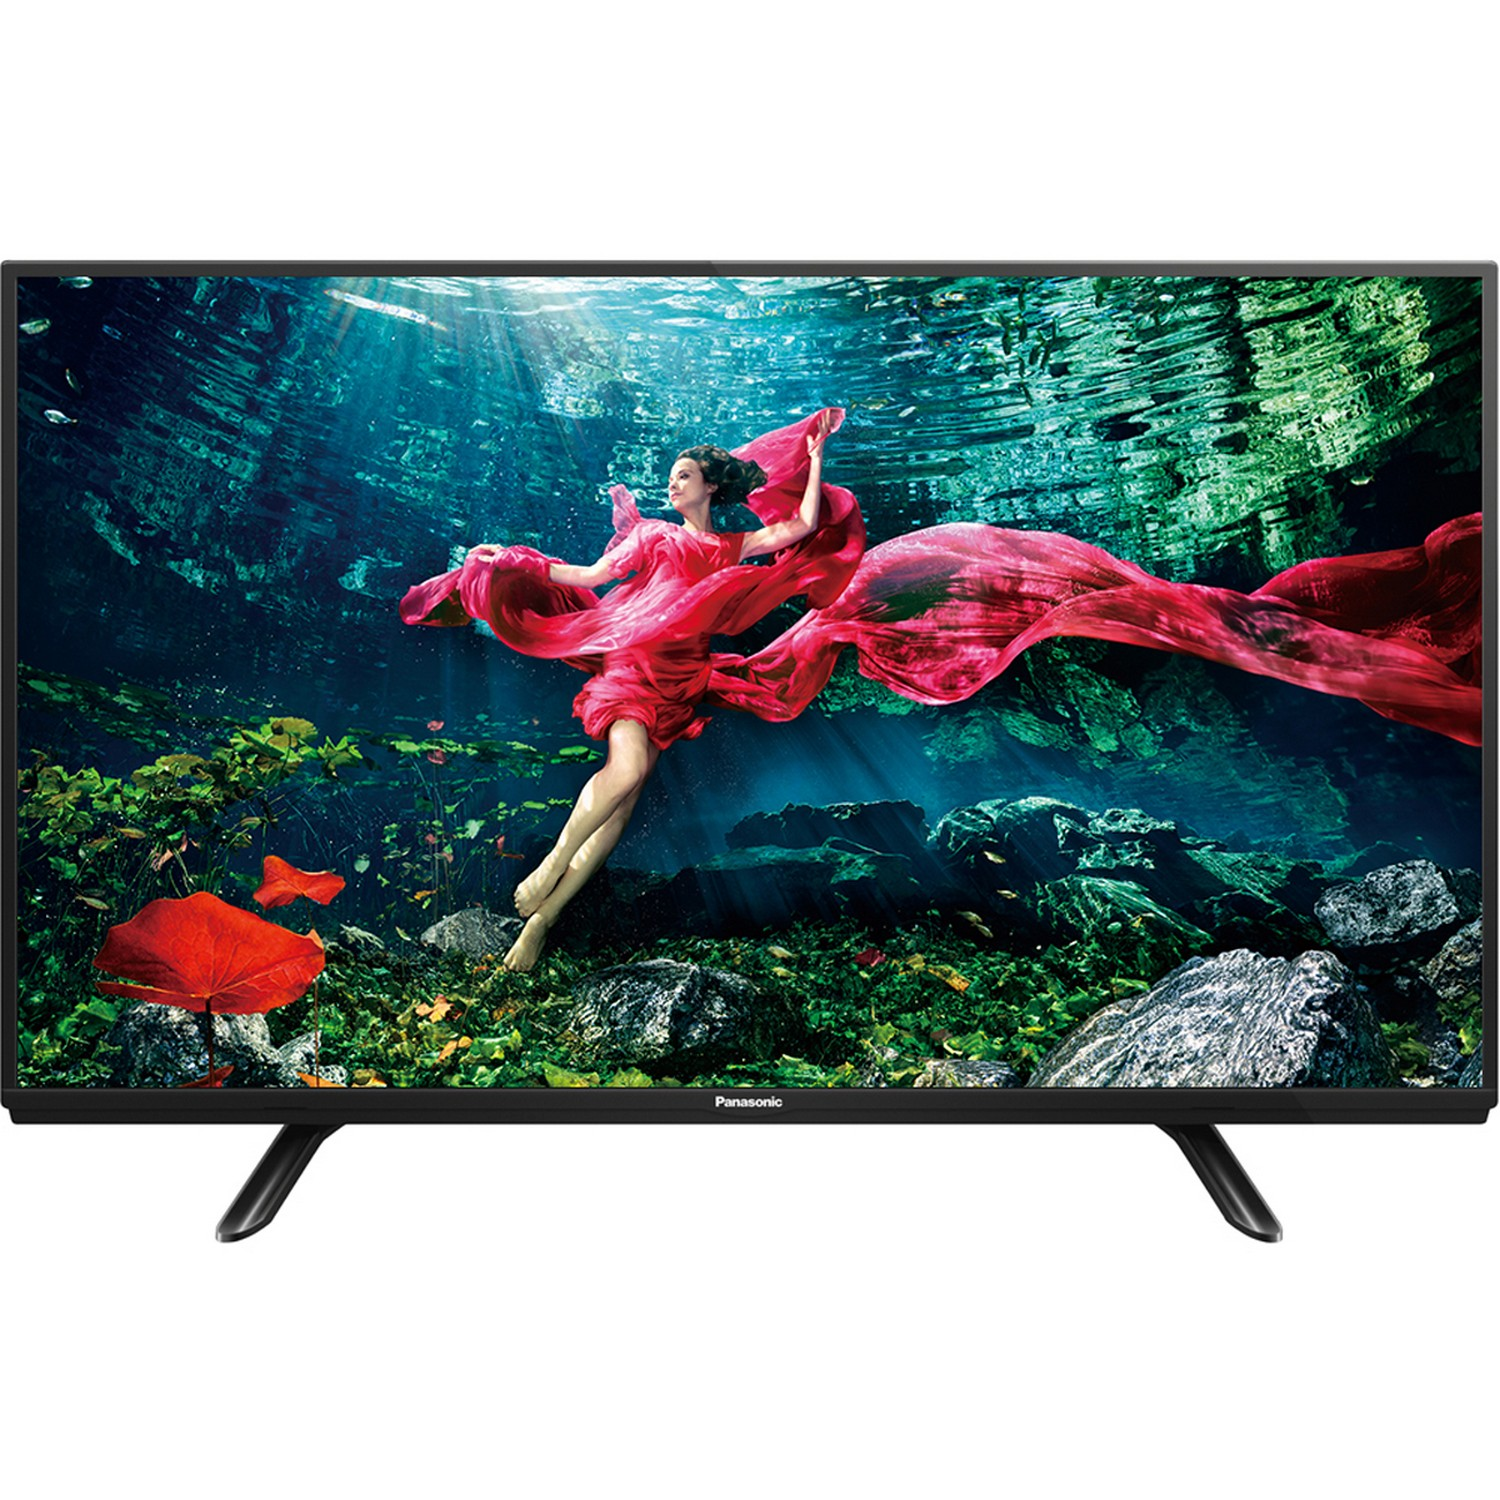 Panasonic LED Digital TV 40 นิ้ว รุ่น 40D400T